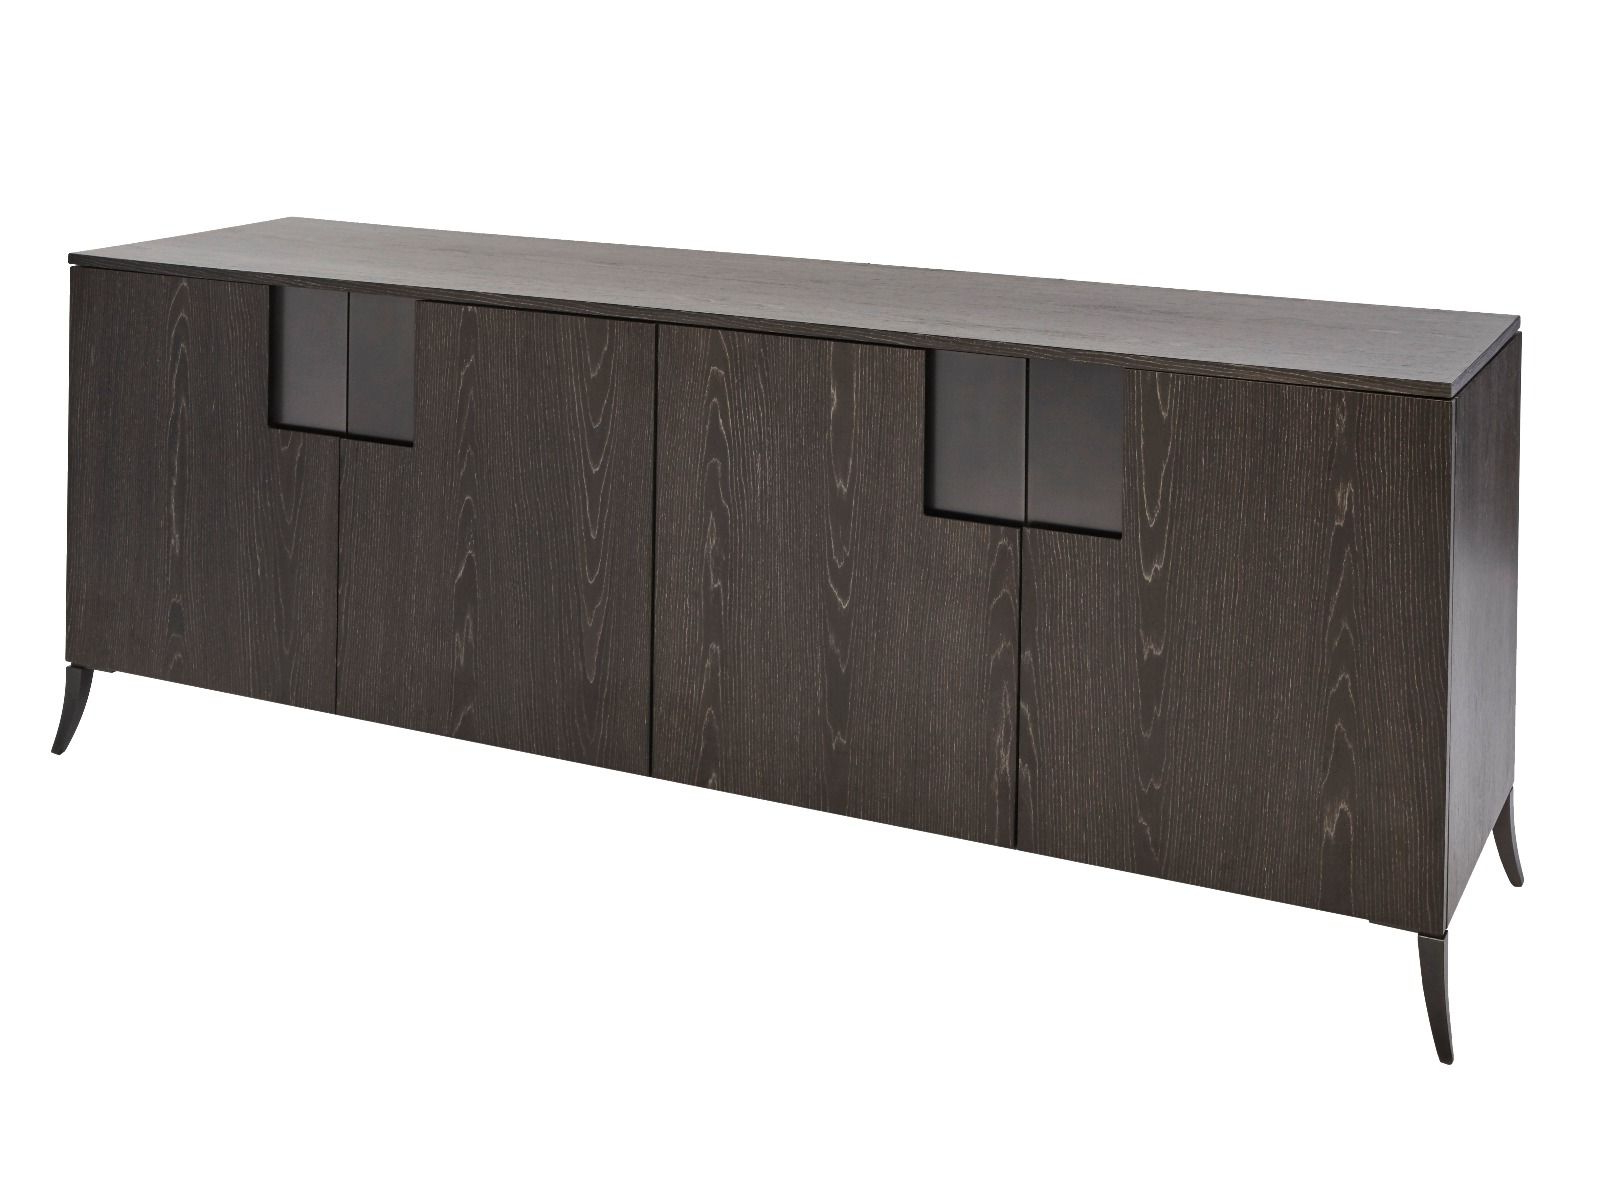 Buffet Sideboard Double Length Inside 2 Shelf Buffets With Curved Legs (View 4 of 20)